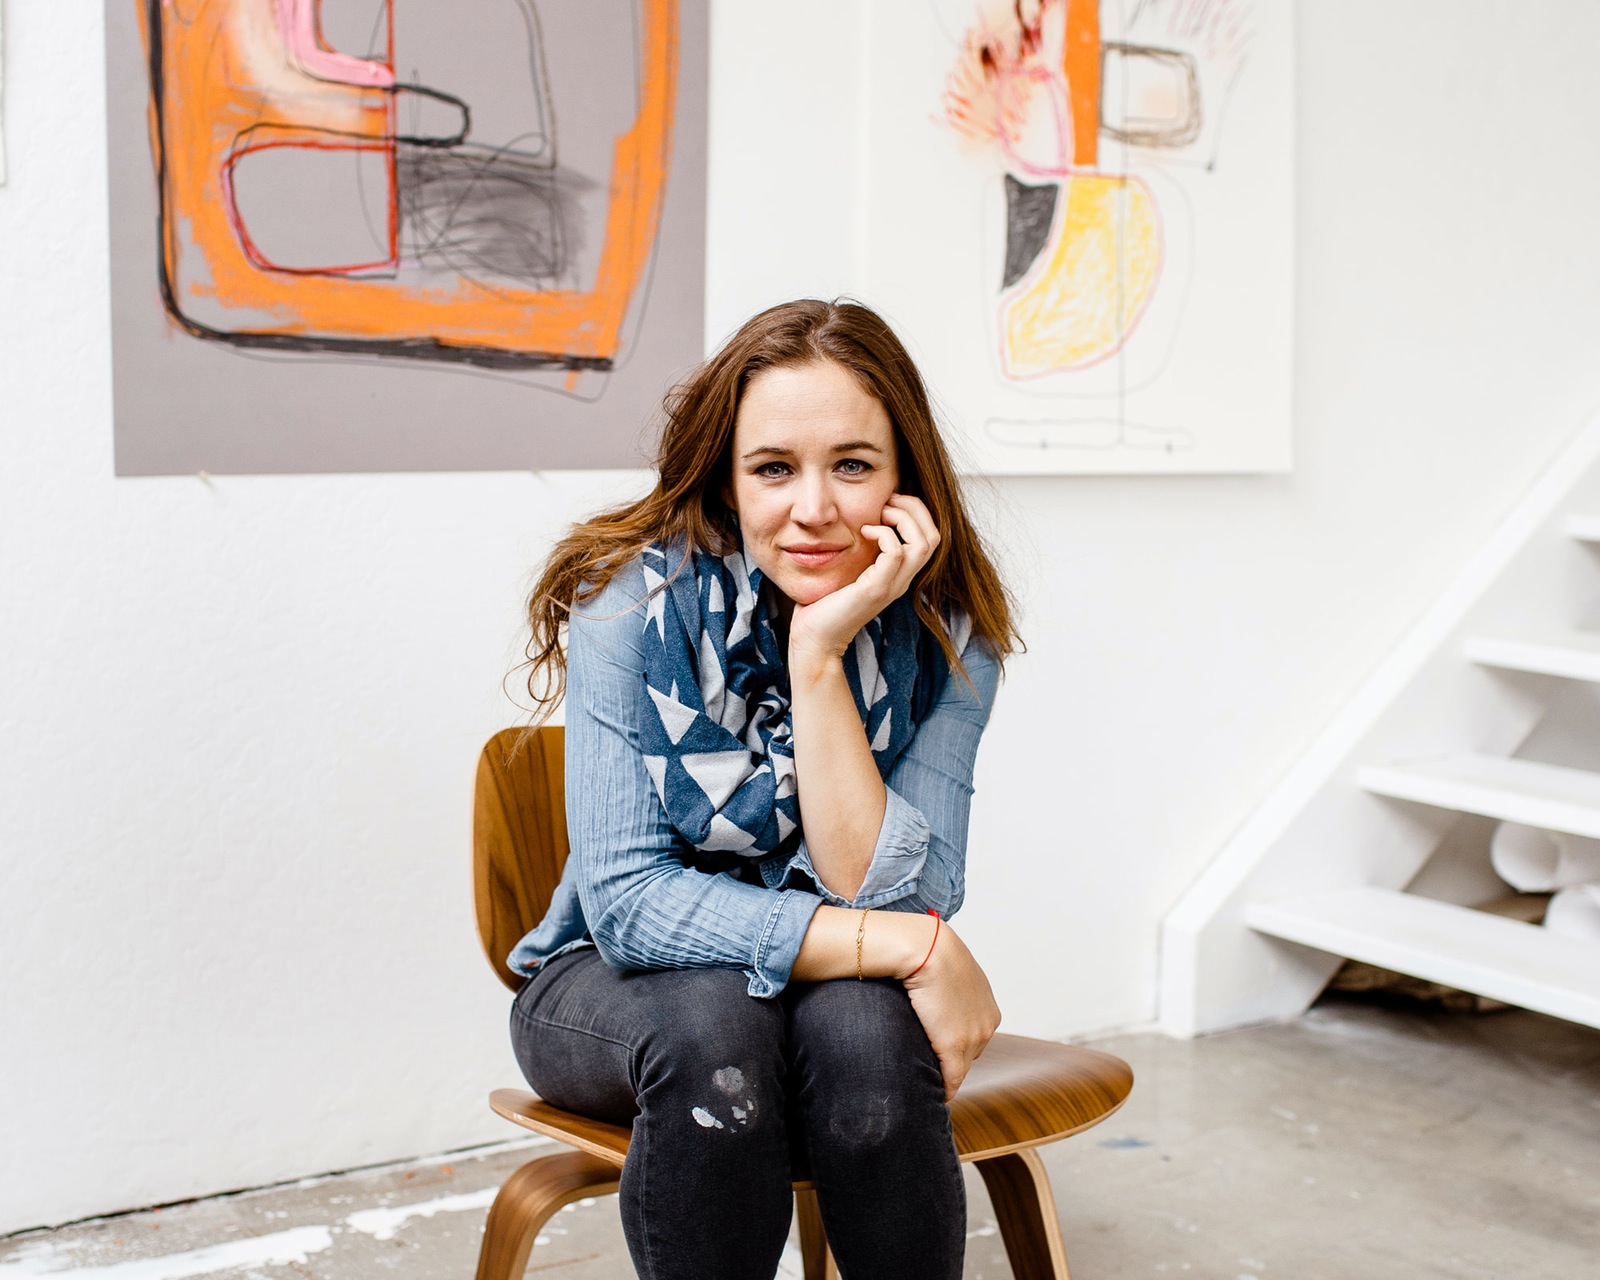 Elle Luna works in her studio, where she paints, draws, and experiments